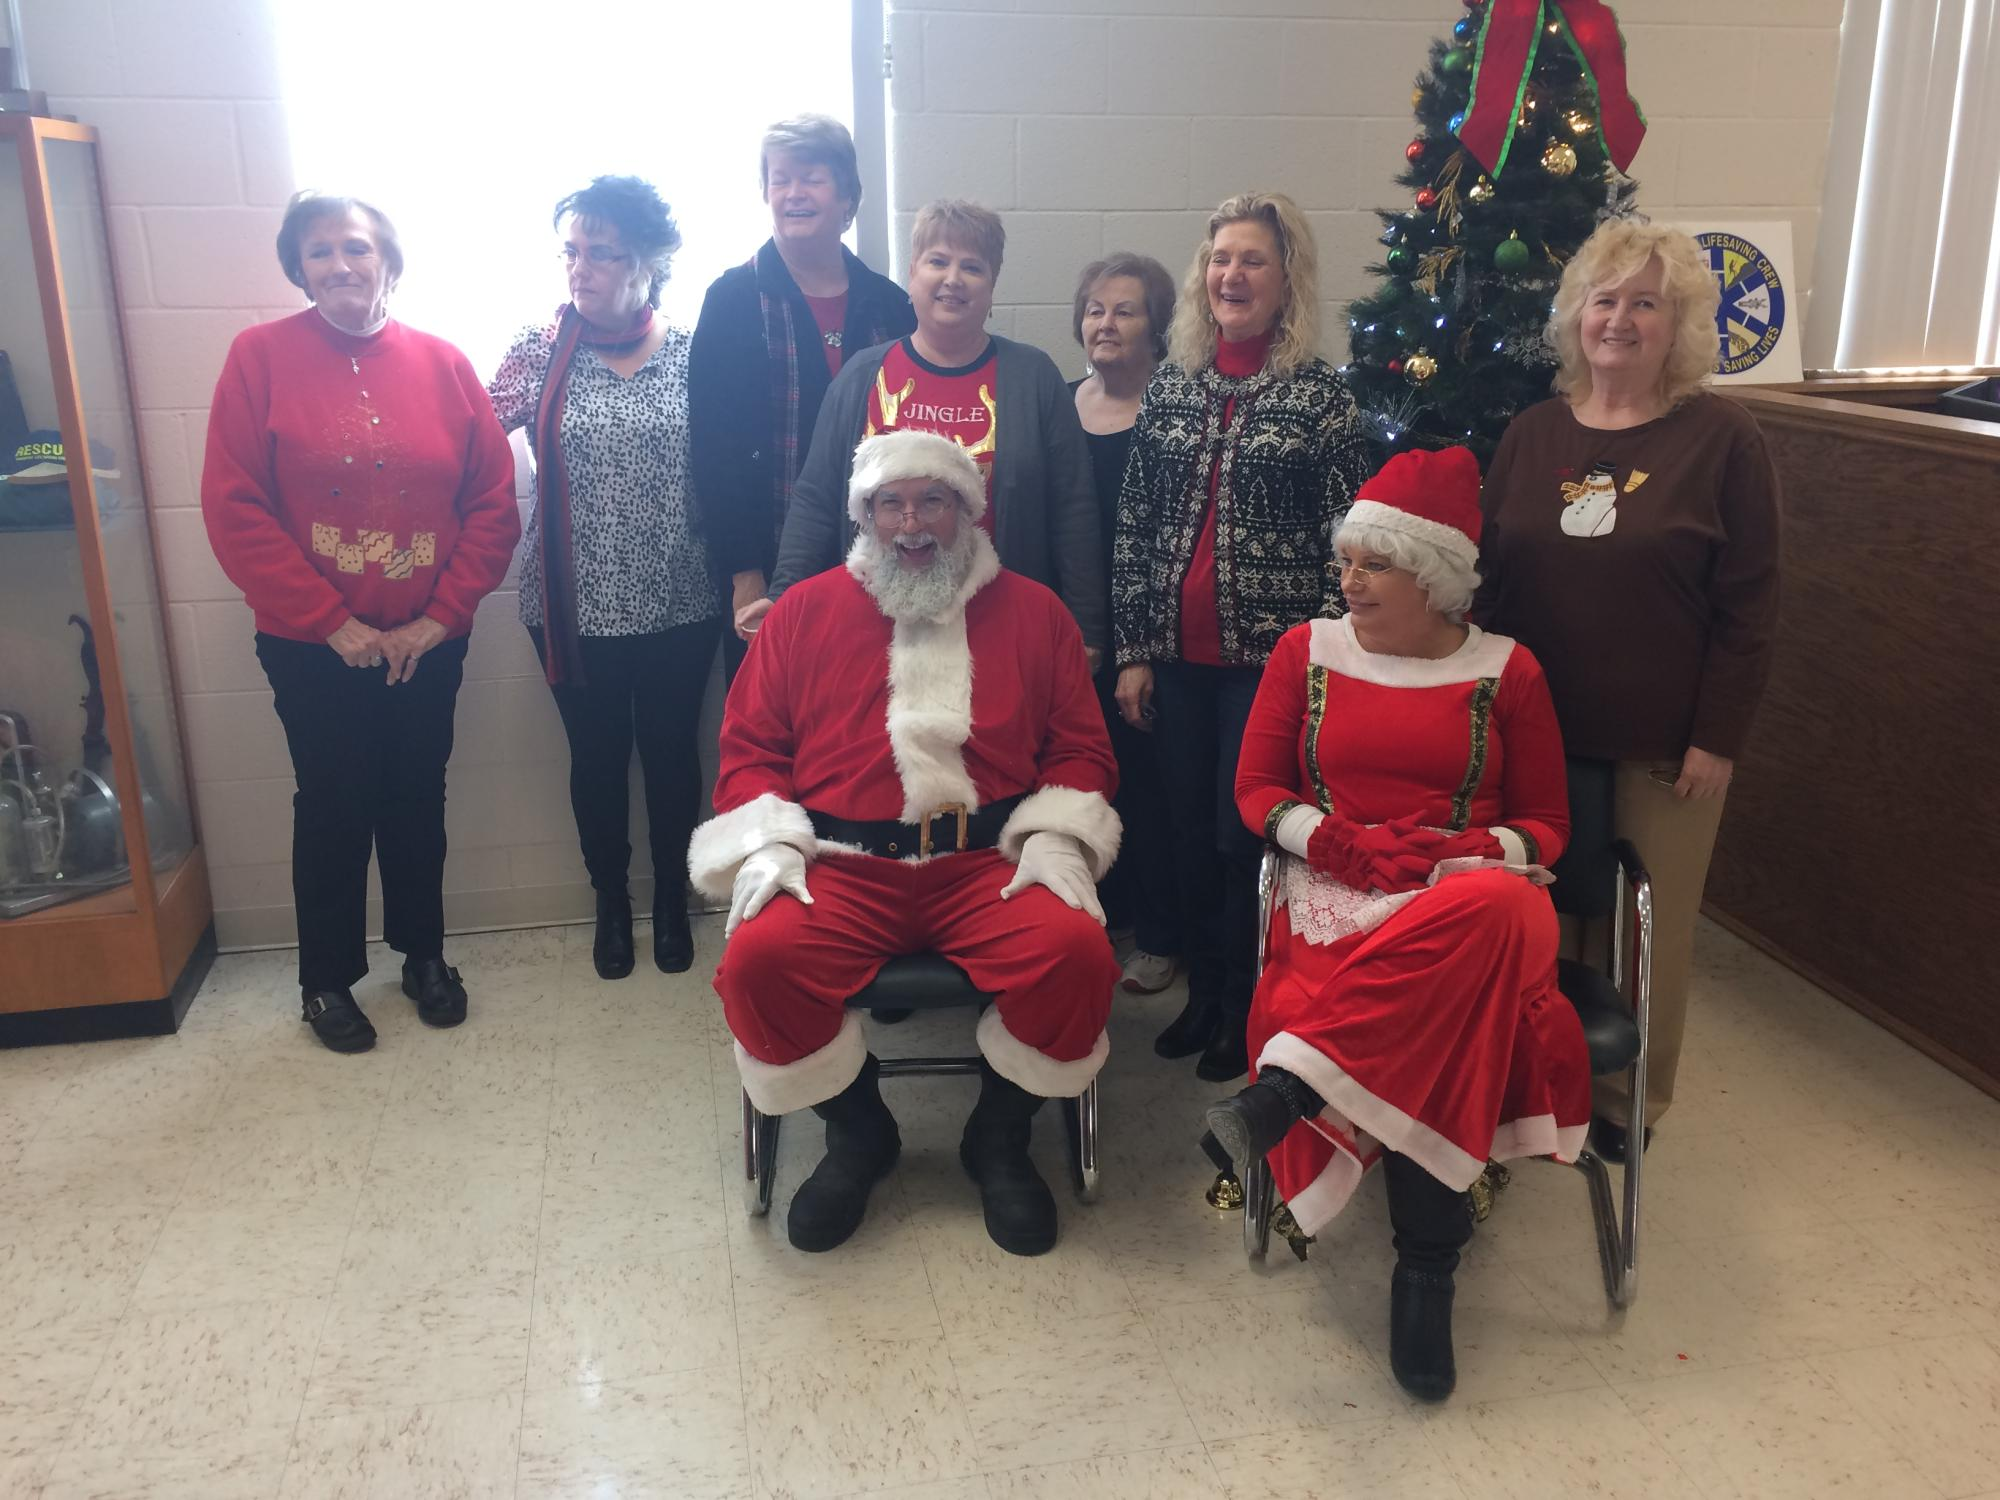 Our Crewettes with Mr. and Mrs. Clause during our Chirstmas party for the kids.